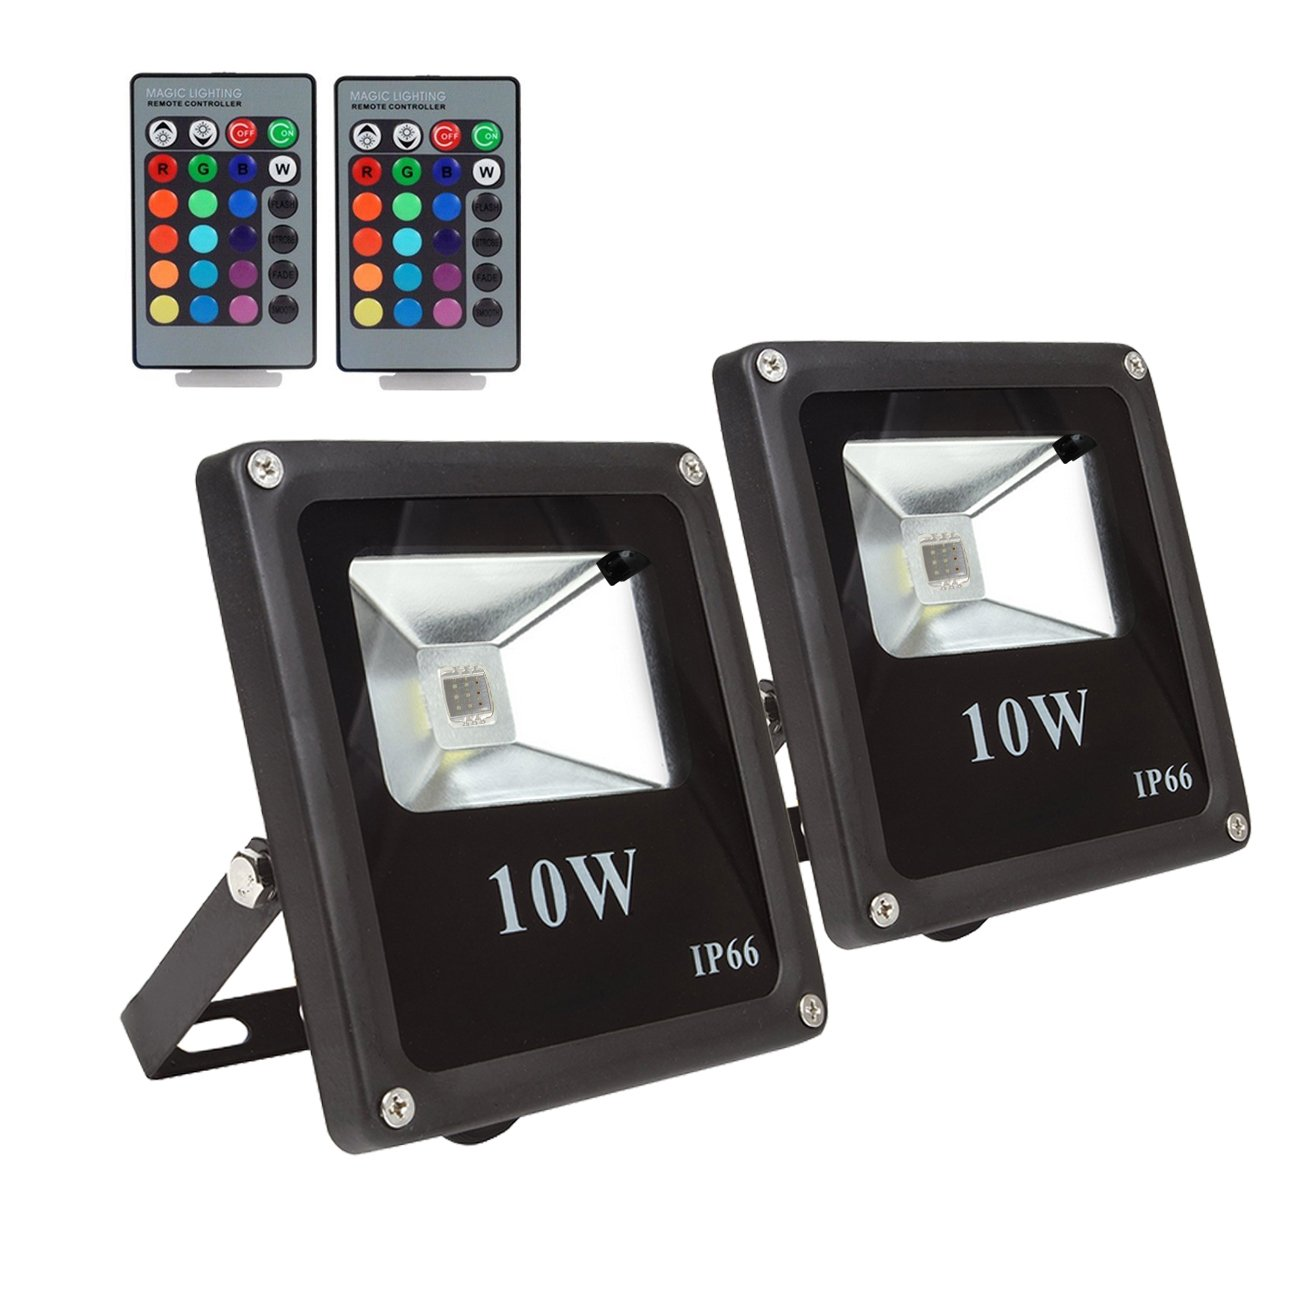 (2 Pack) RGB LED Flood Lights, Outdoor Color Changing Floodlight With Remote Control, IP66 Waterproof 16 Colors 4 Modes Dimmable Wall Washer Light, Stage Lighting with US 3-Plug ,AC85-265V,10W Galaxy